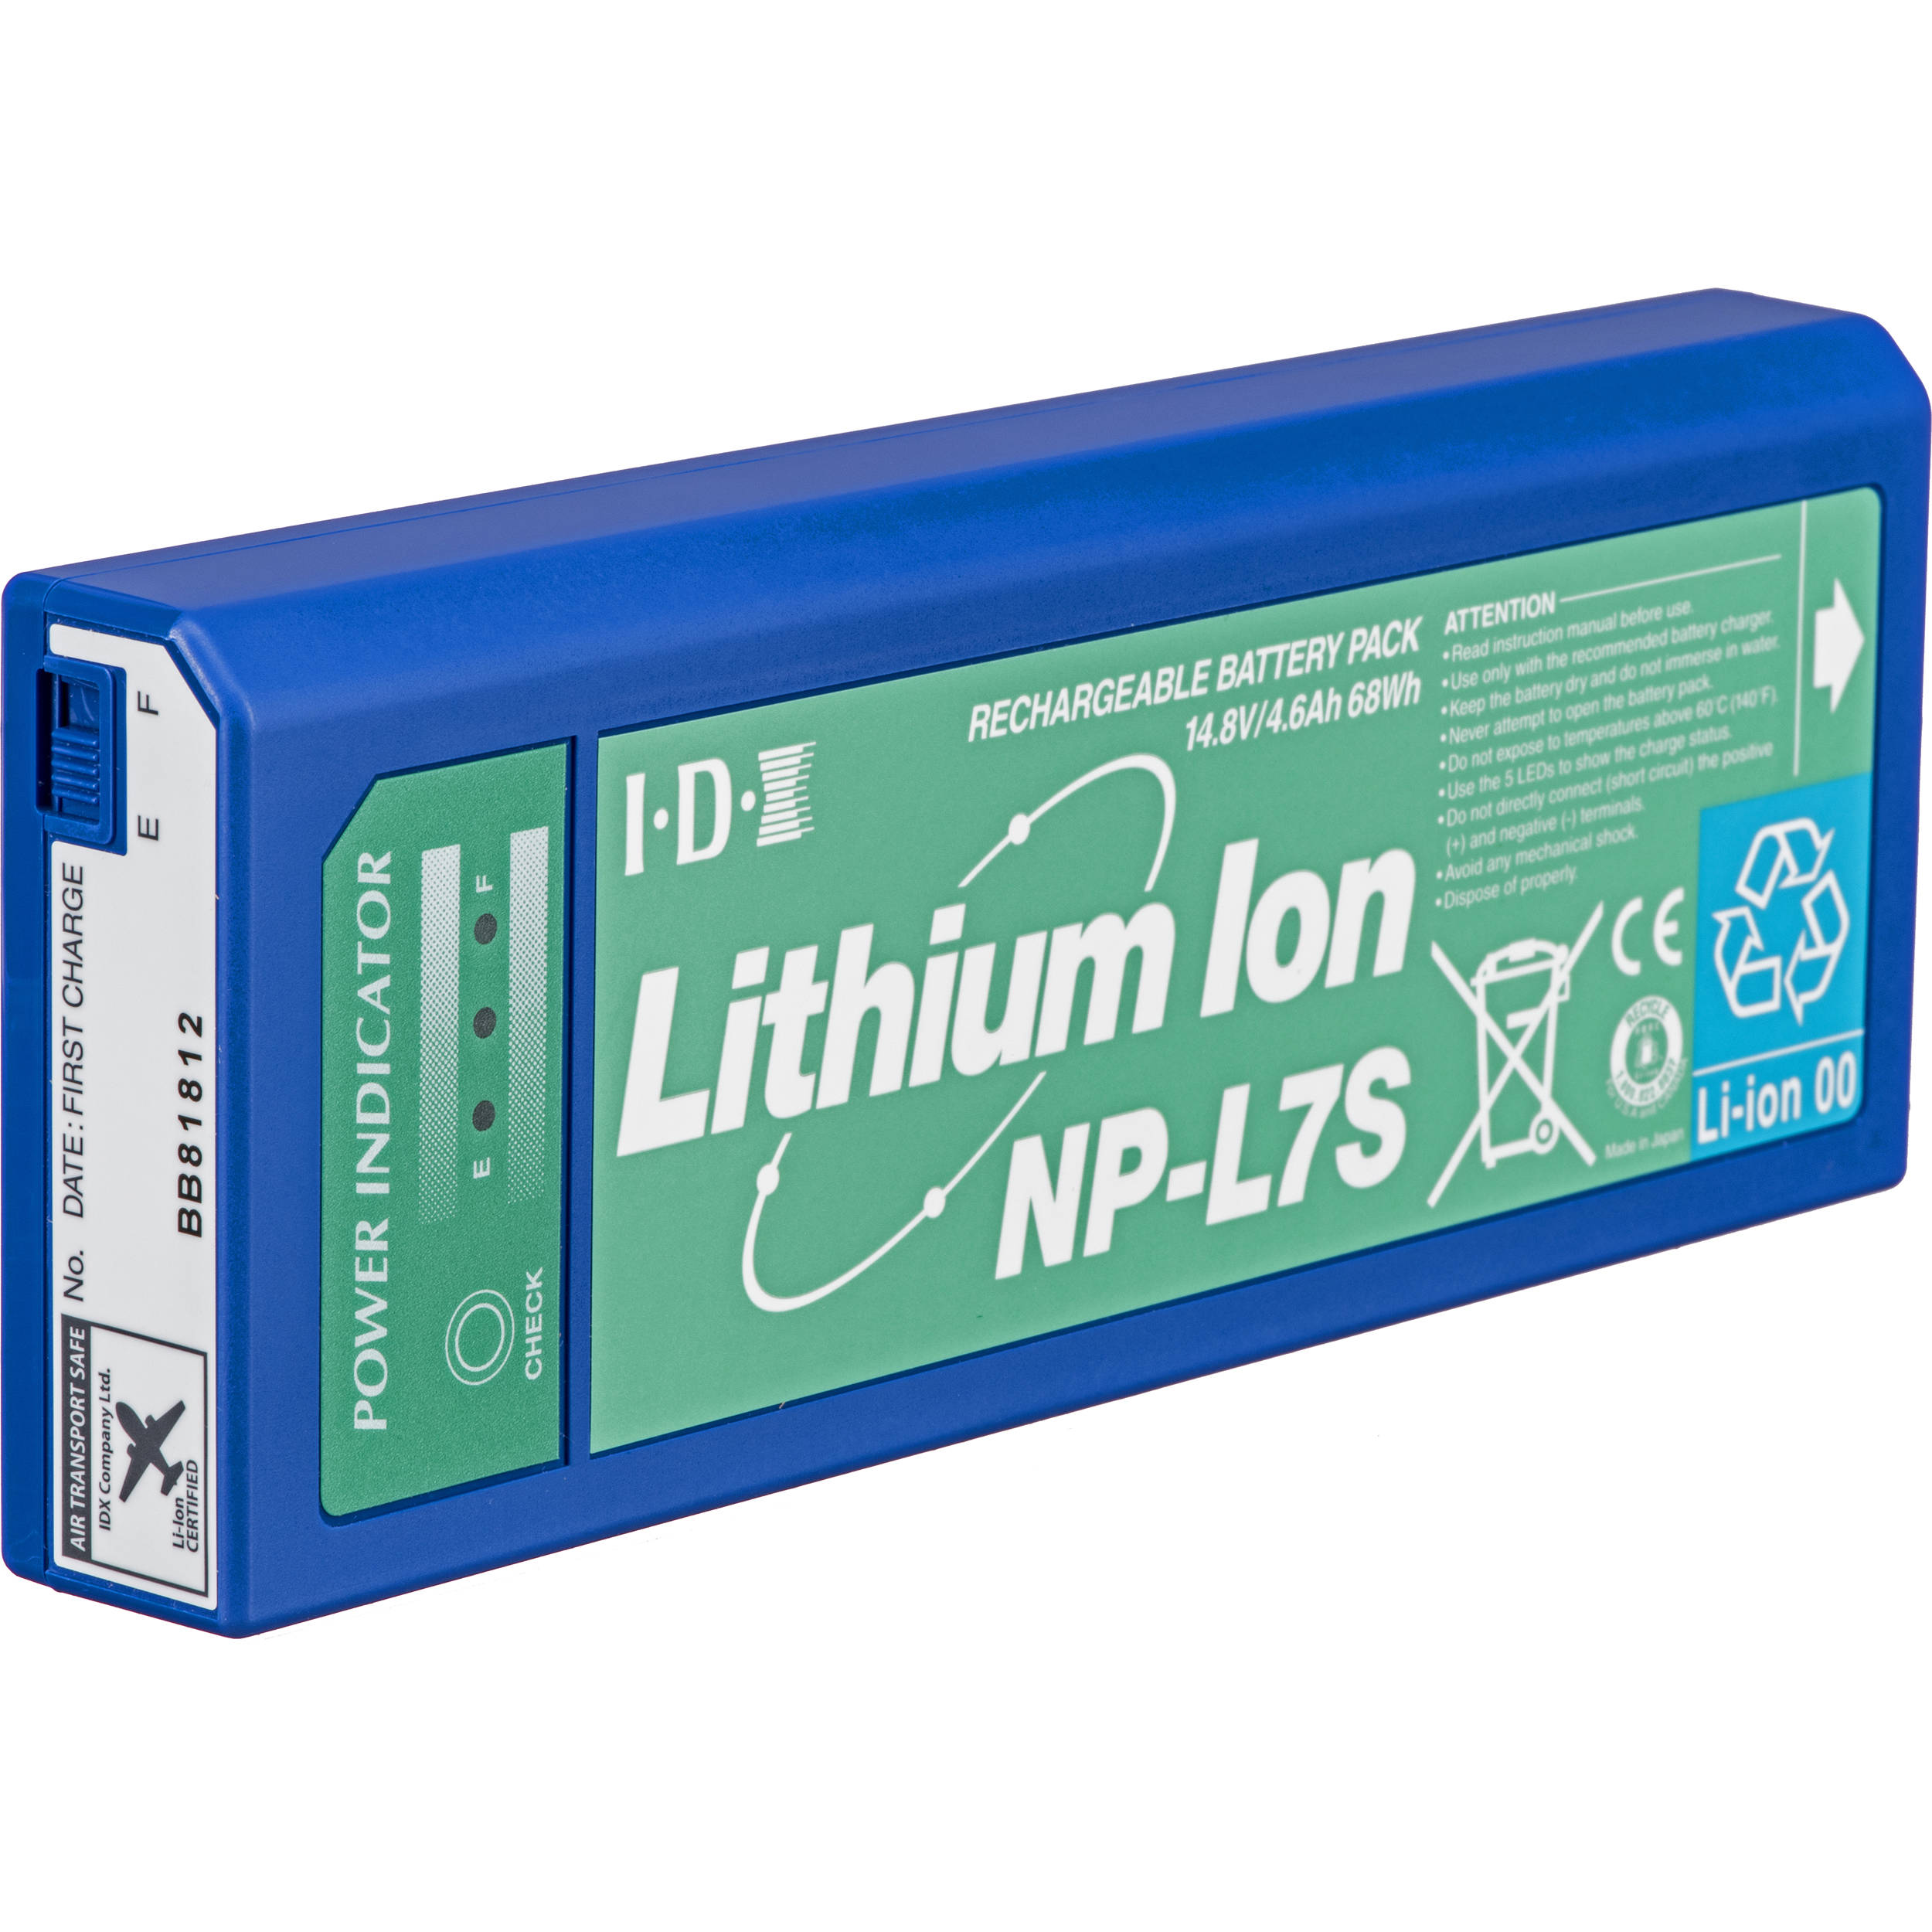 Lithium Ion Battery >> Idx System Technology Np L7s Np Style Lithium Ion Battery